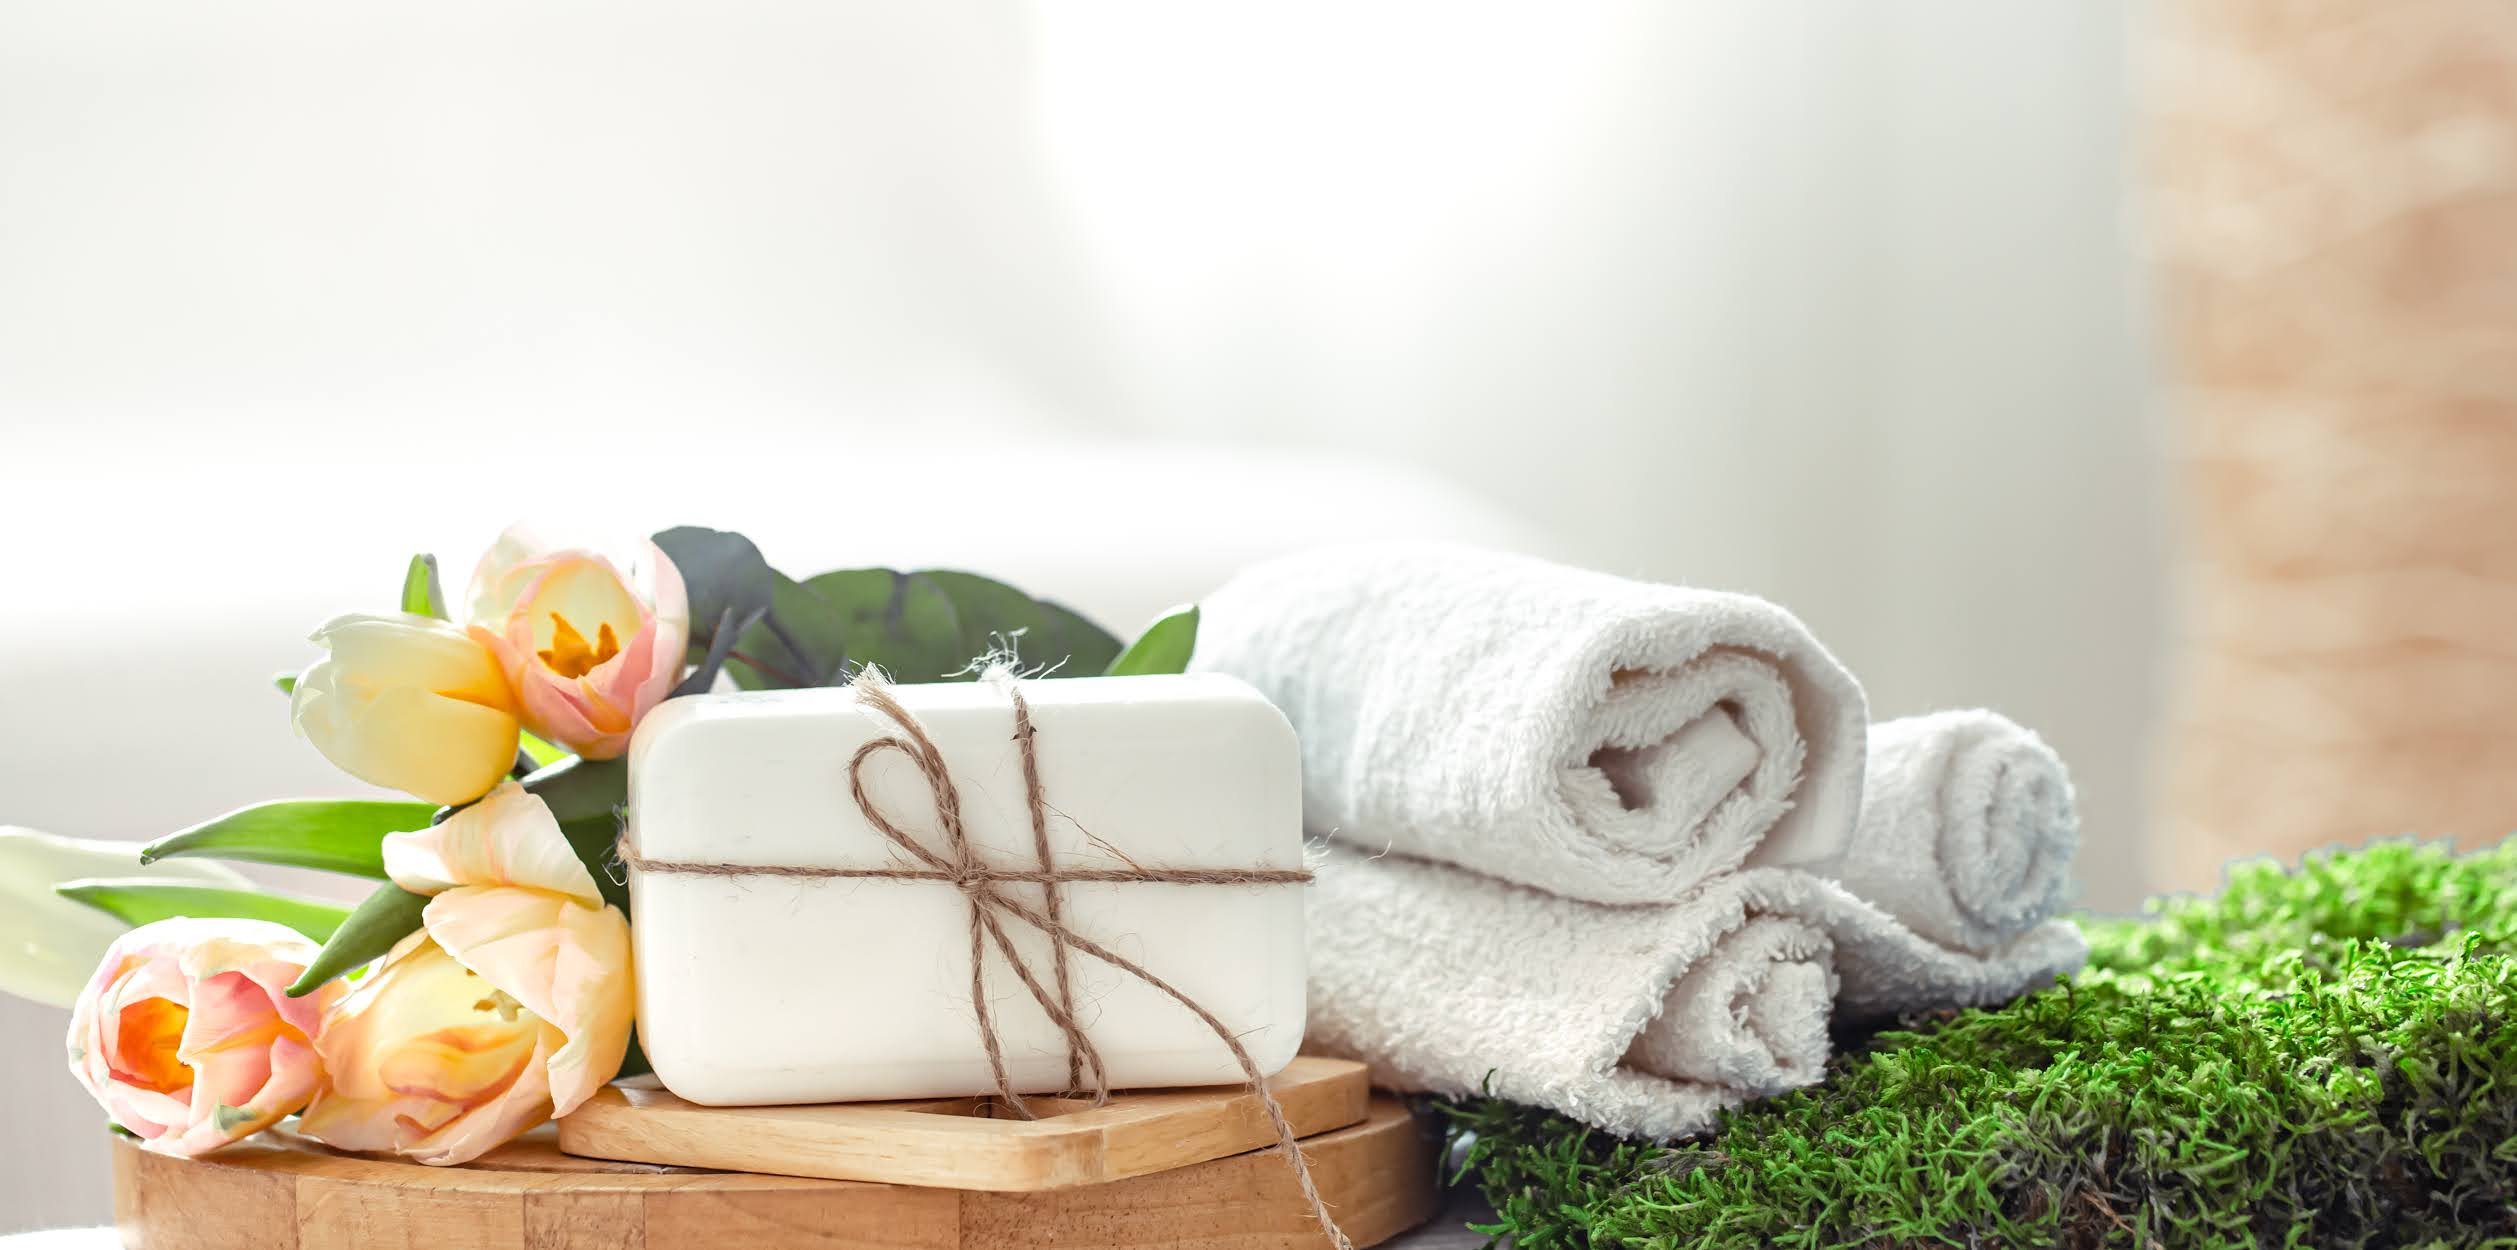 types of beauty spas salons body treatments therapist differences benefits advantages